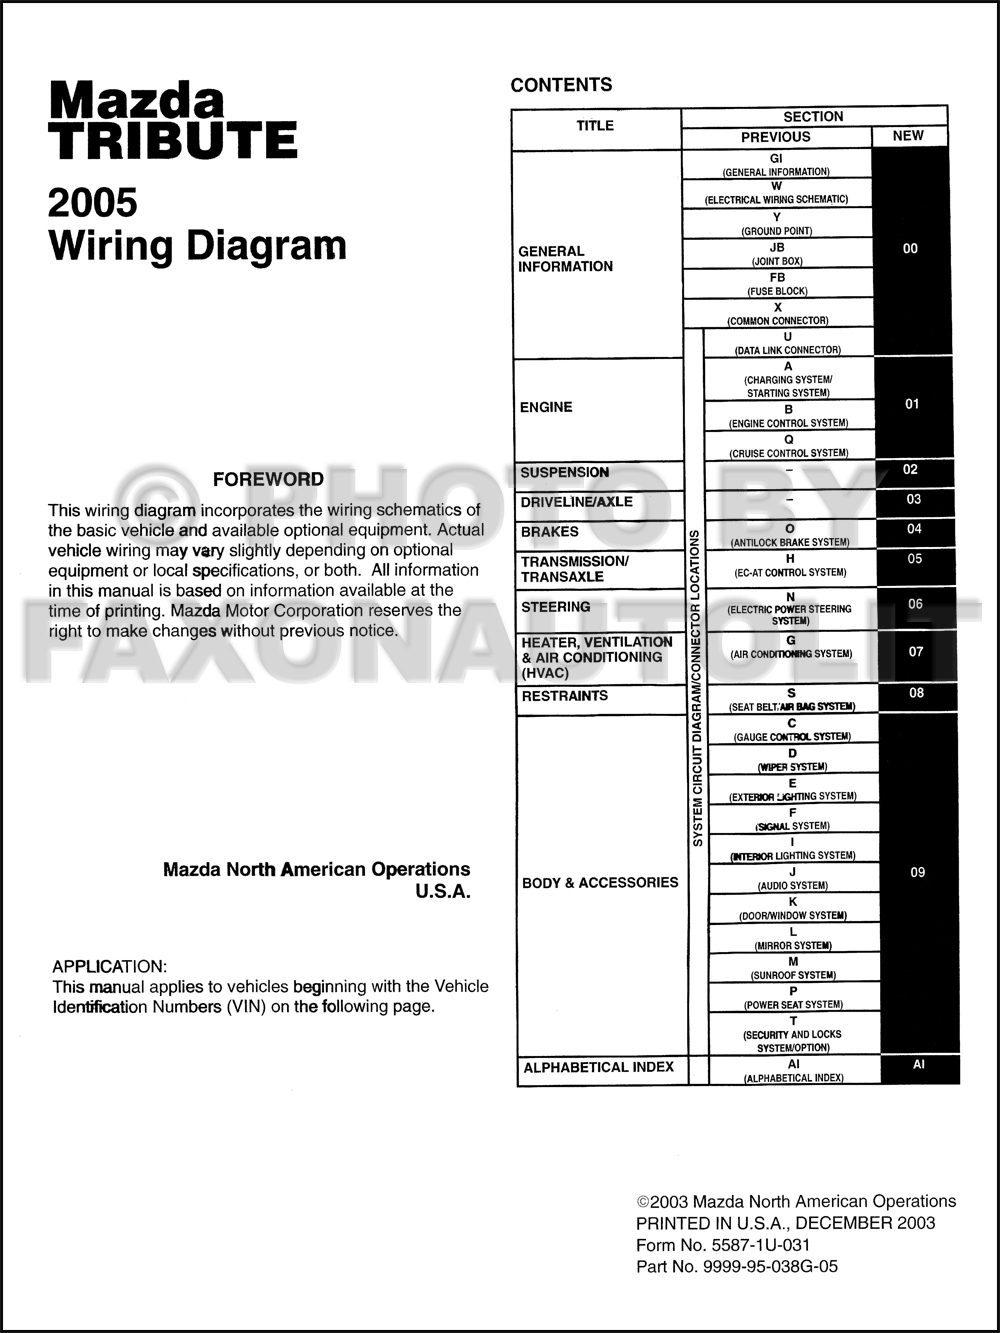 Wiring Diagram Manual Wdm : Mazda tribute wiring diagram manual original